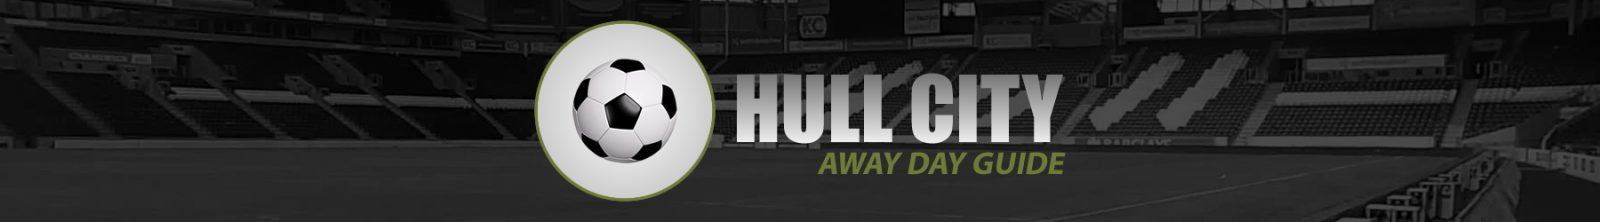 Hull City Away